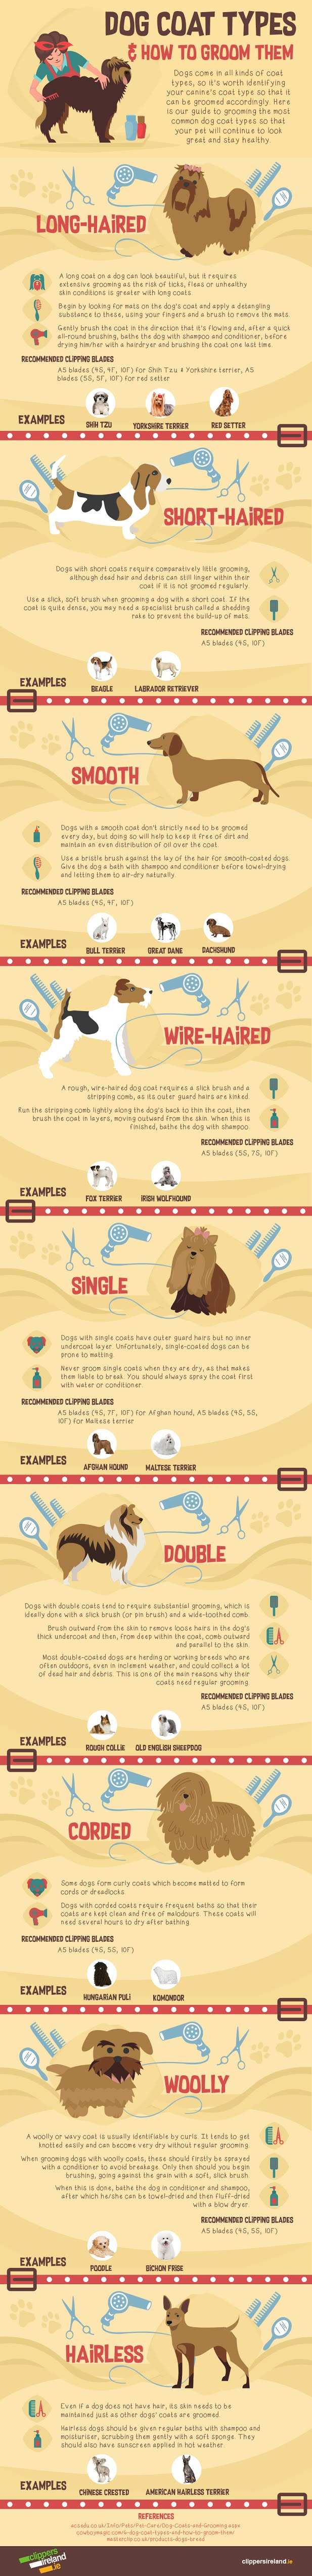 Dog Coat Types & How To Groom Them #infographic #pets & Animal #Dog Coat #Dog Coat Types #Dogs